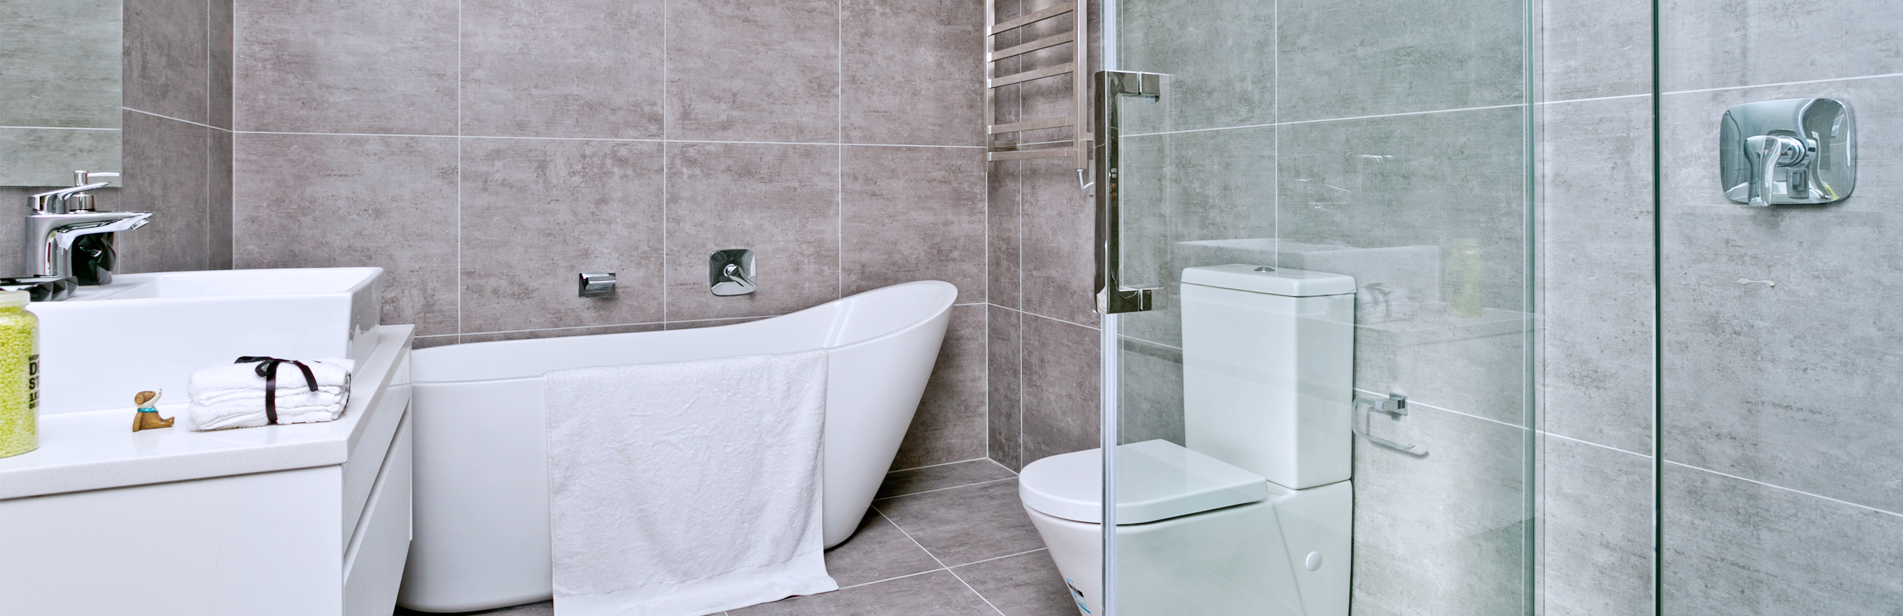 Pleasing 10 Bathroom Renovations East Auckland Inspiration Of Complete Bathrooms Renovations In